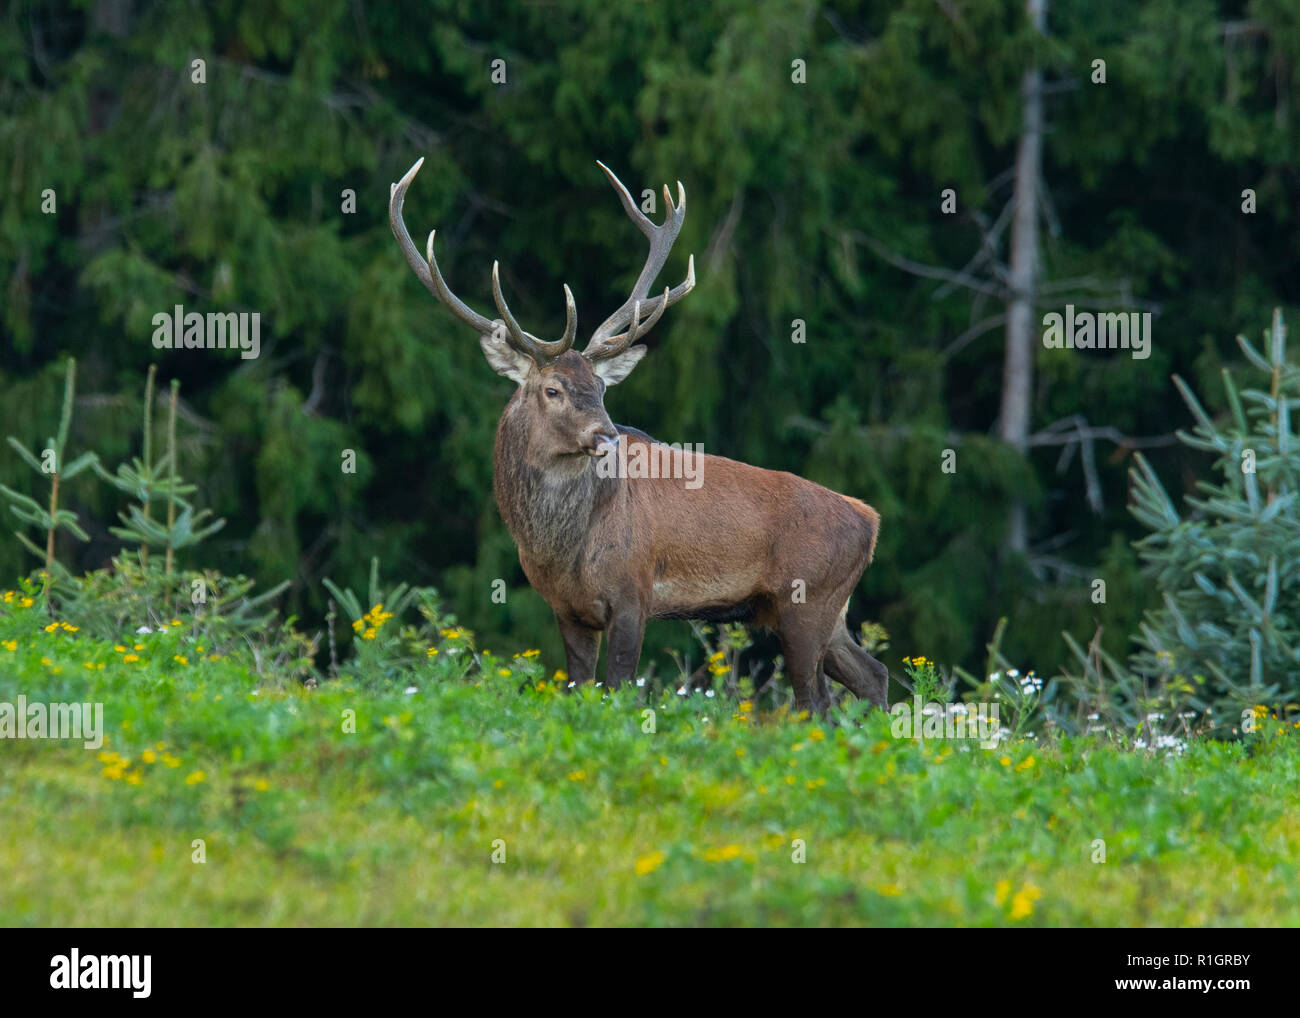 Red deer stag ( Cervus elaphus) in rut season - Stock Image